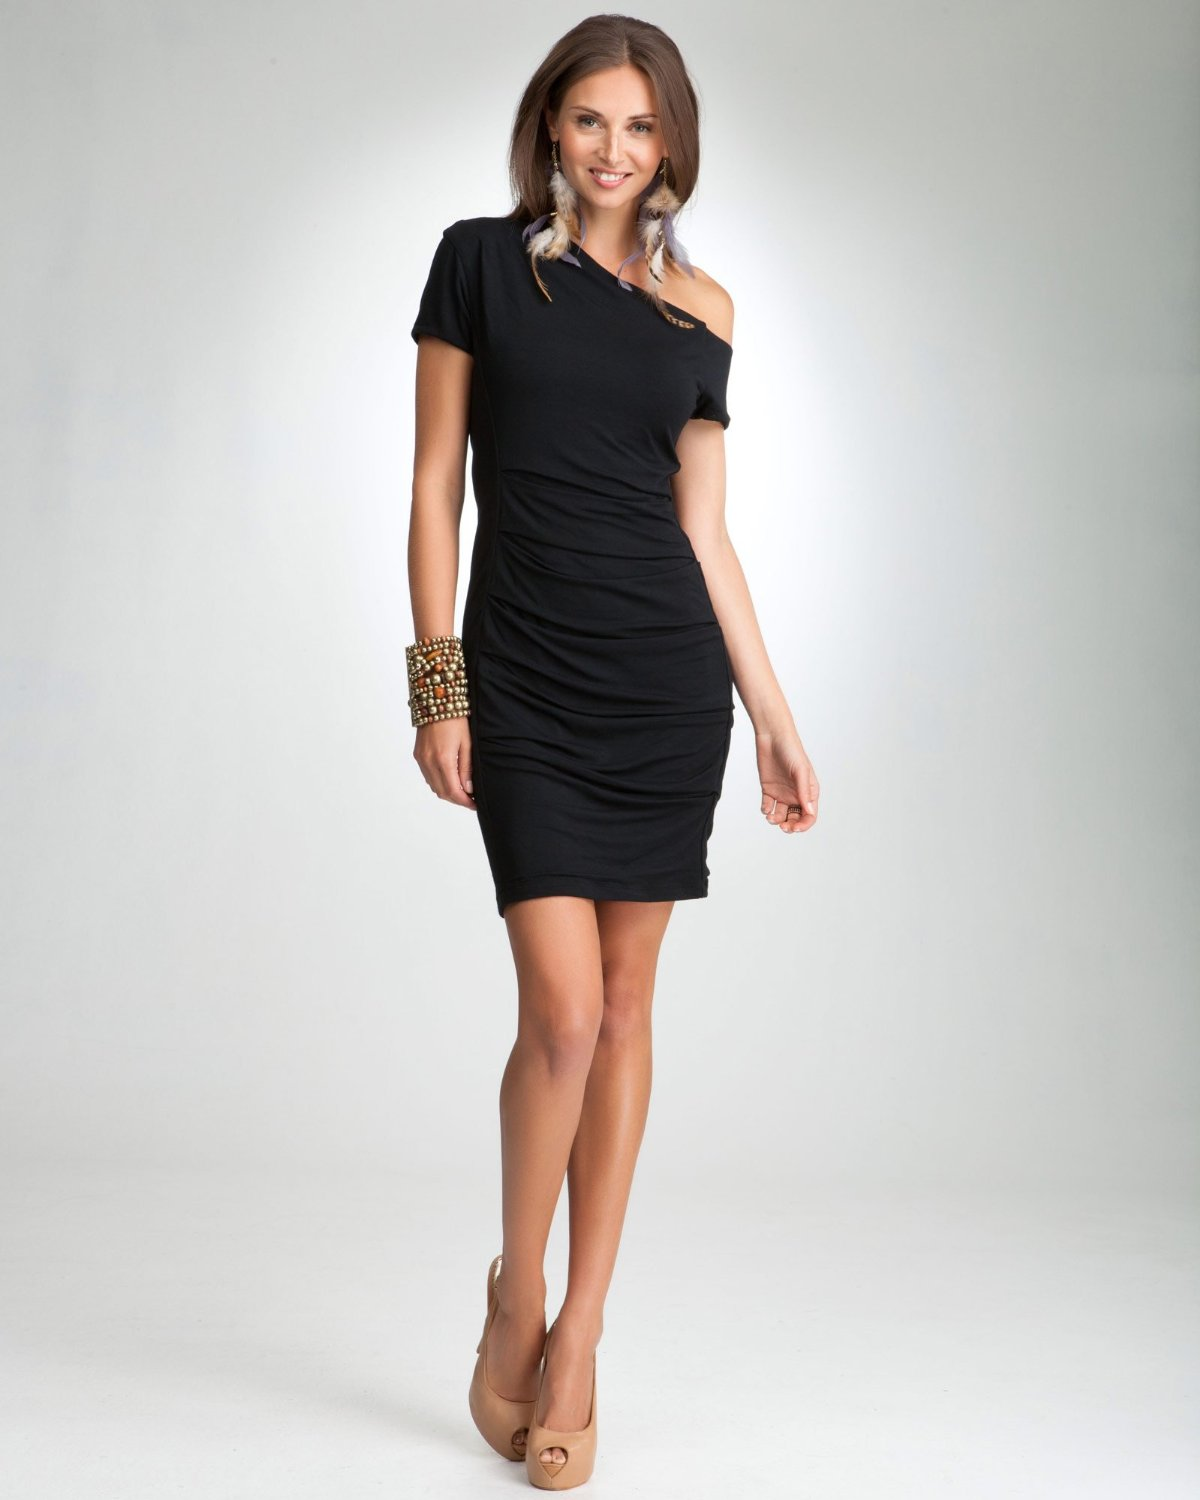 New  Dresses Casual Party Club Pencil Sheath Dressin Dresses From Women39s